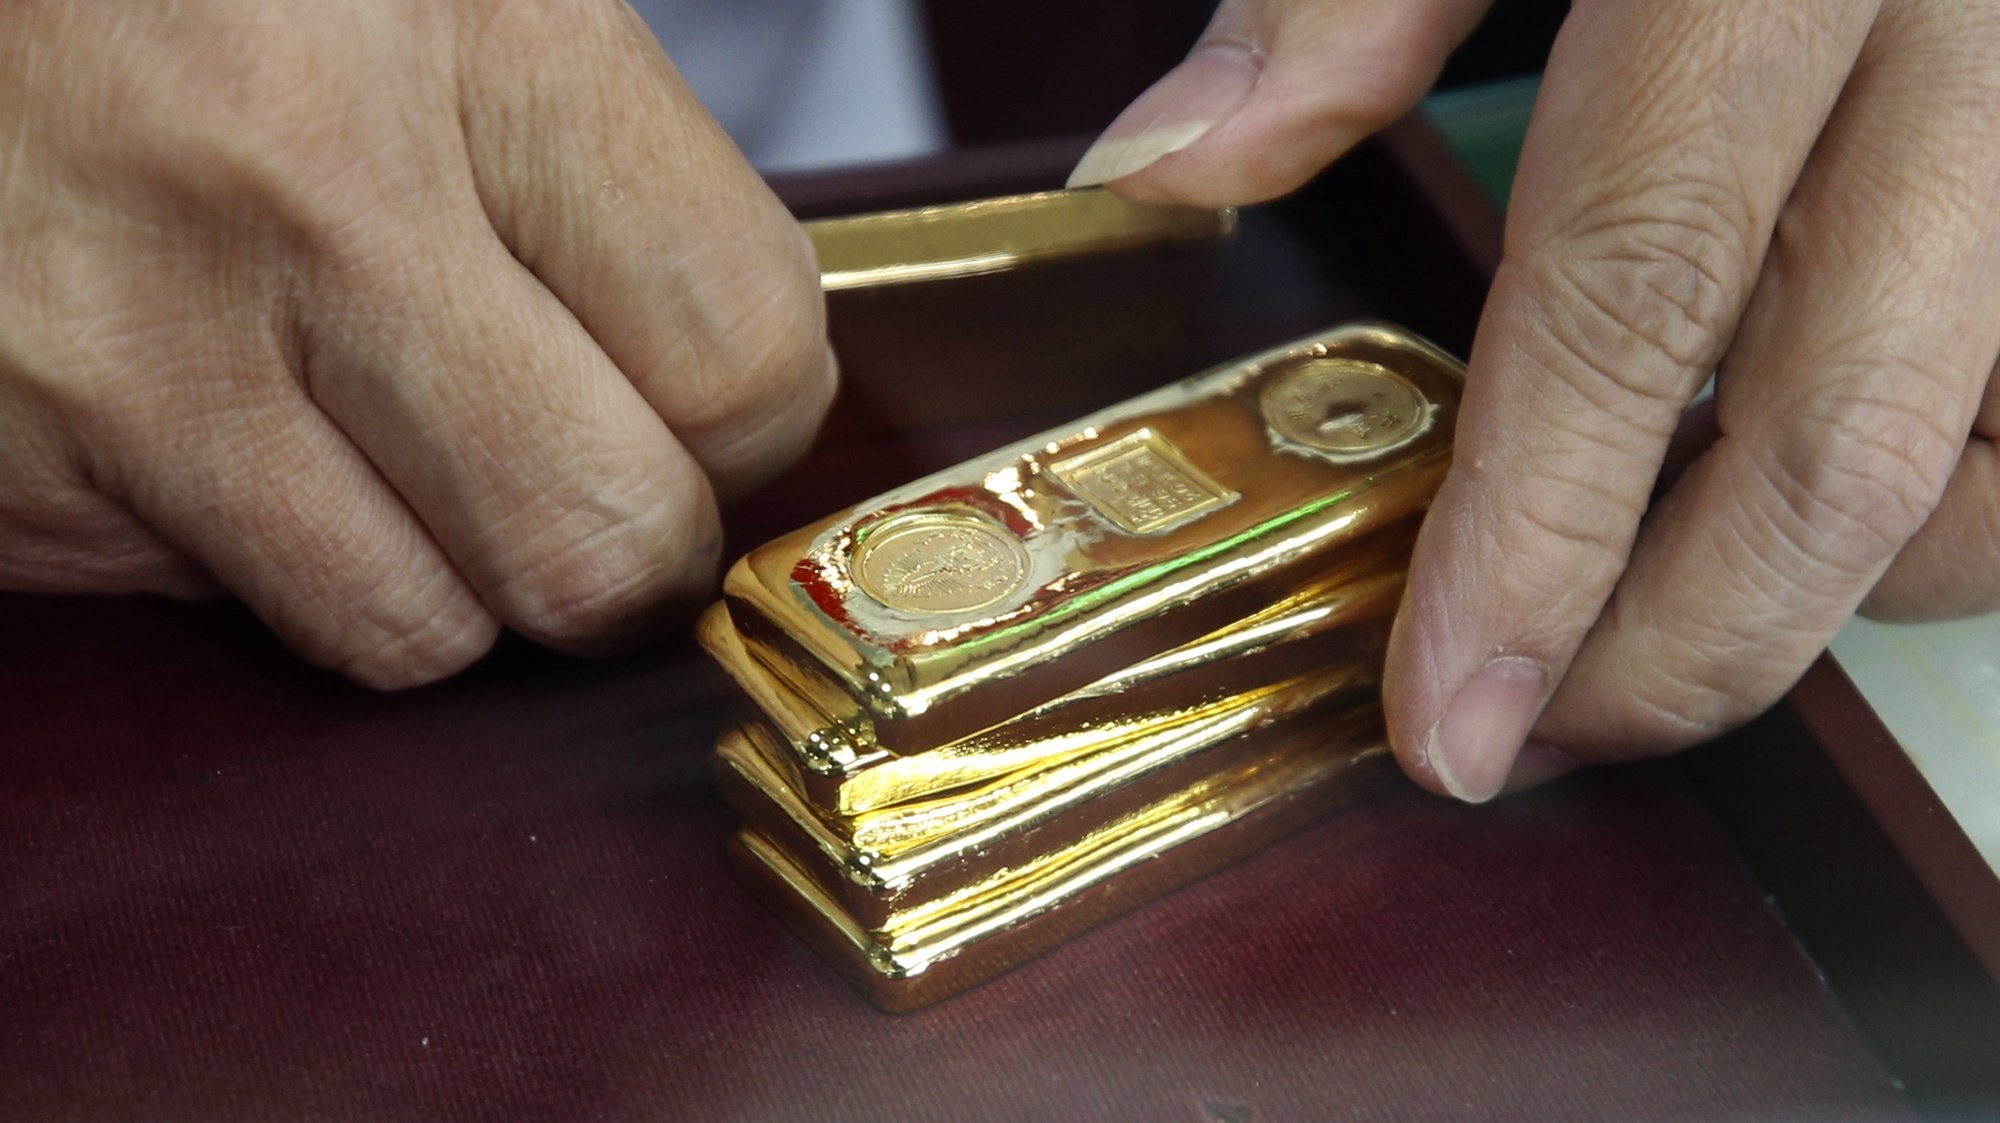 epa08589079 A gold seller checks the weight of gold bars before trading at a gold shop in Chinatown, Bangkok, Thailand, 07 August 2020. People flocked to sell their ornaments after the price of gold rose sharply over 30,000 Thai baht (962.44 US dollar) per baht-weight for gold bars on 06 August 2020. According to the Thai Gold Traders Association, it is the highest gold price since February 2012.  EPA/NARONG SANGNAK